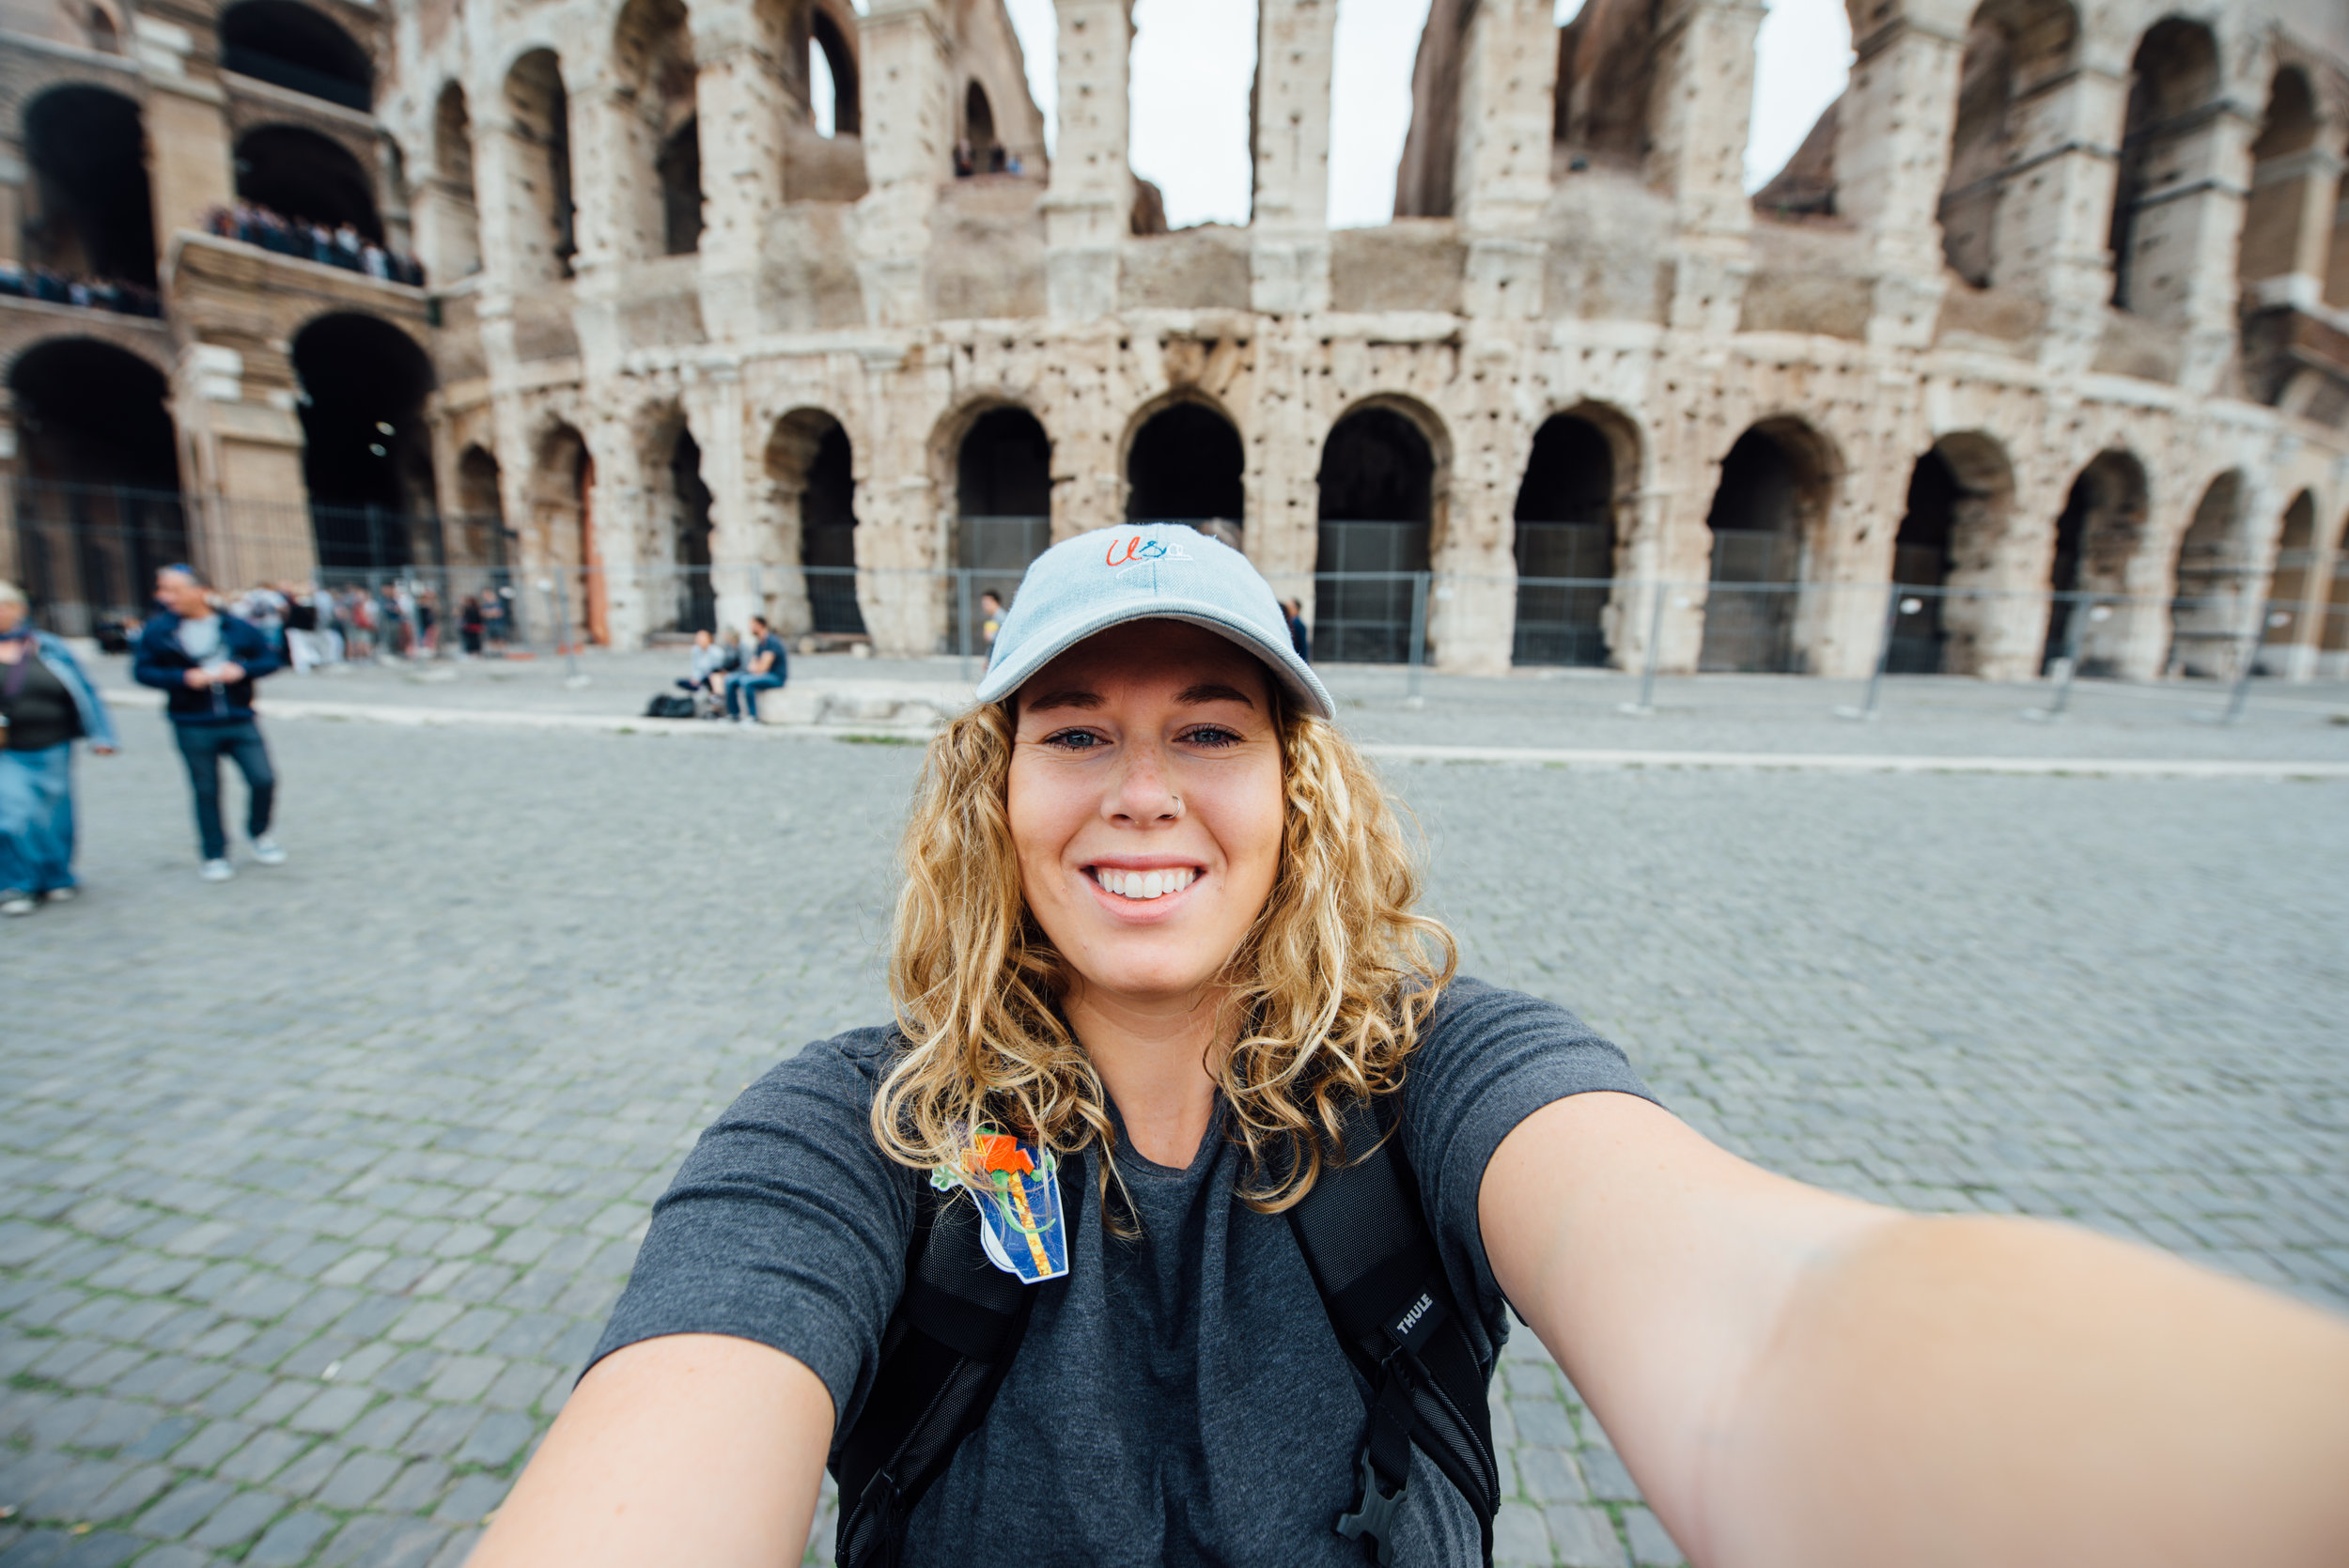 Made it to the iconic Colosseum! Roma, Italy